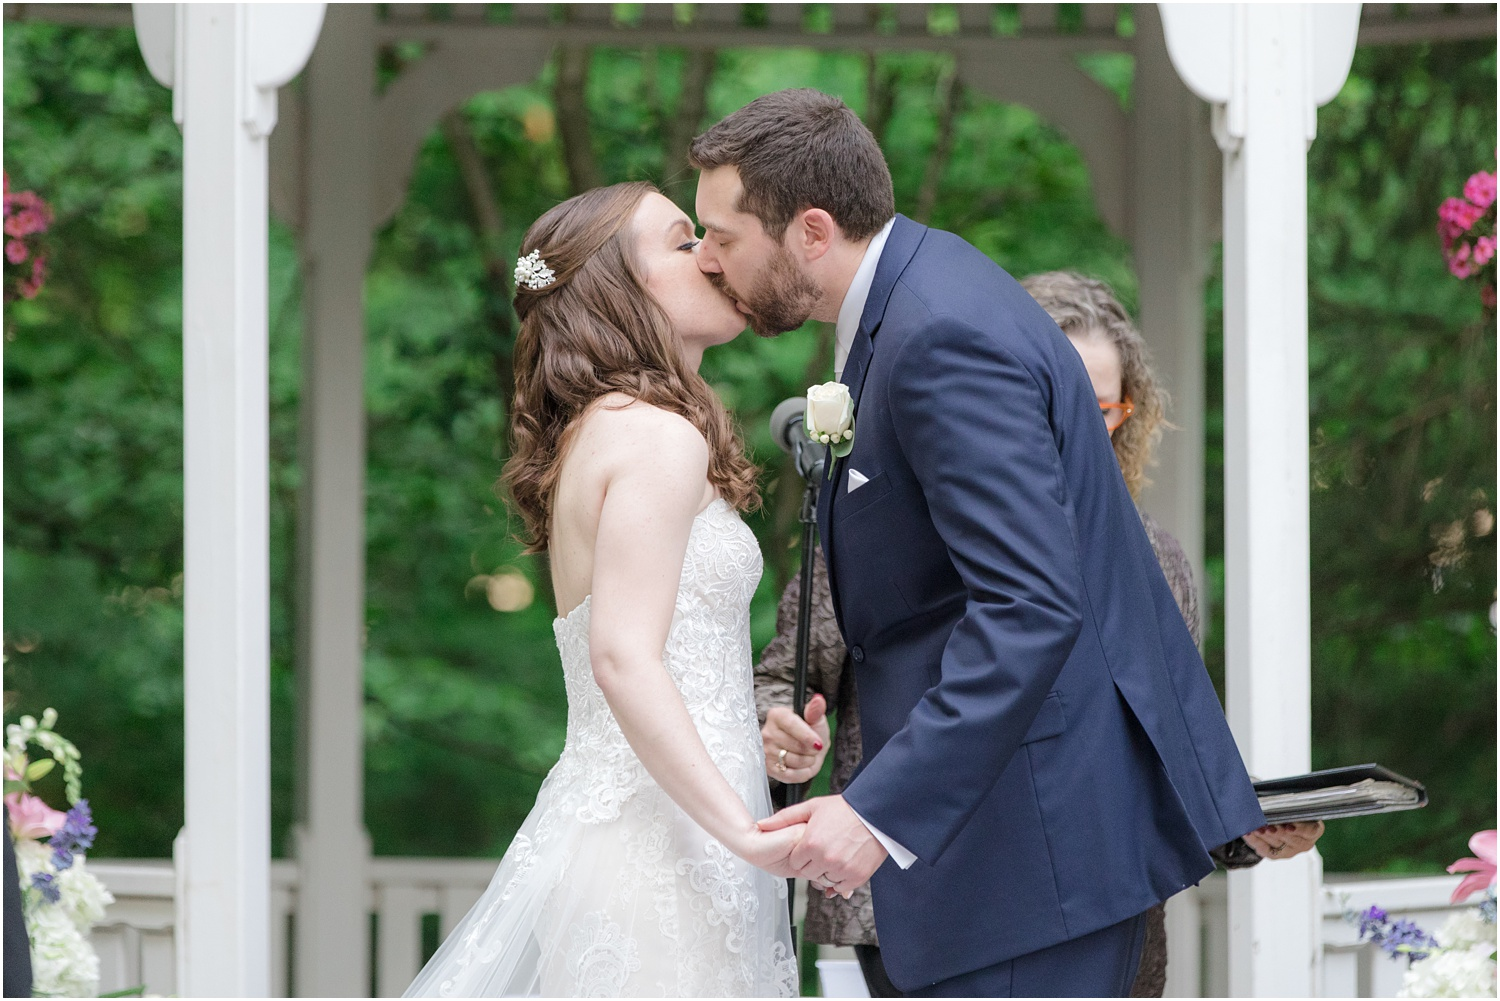 First kiss during Ceremony at The Grain House at Olde Mill Inn